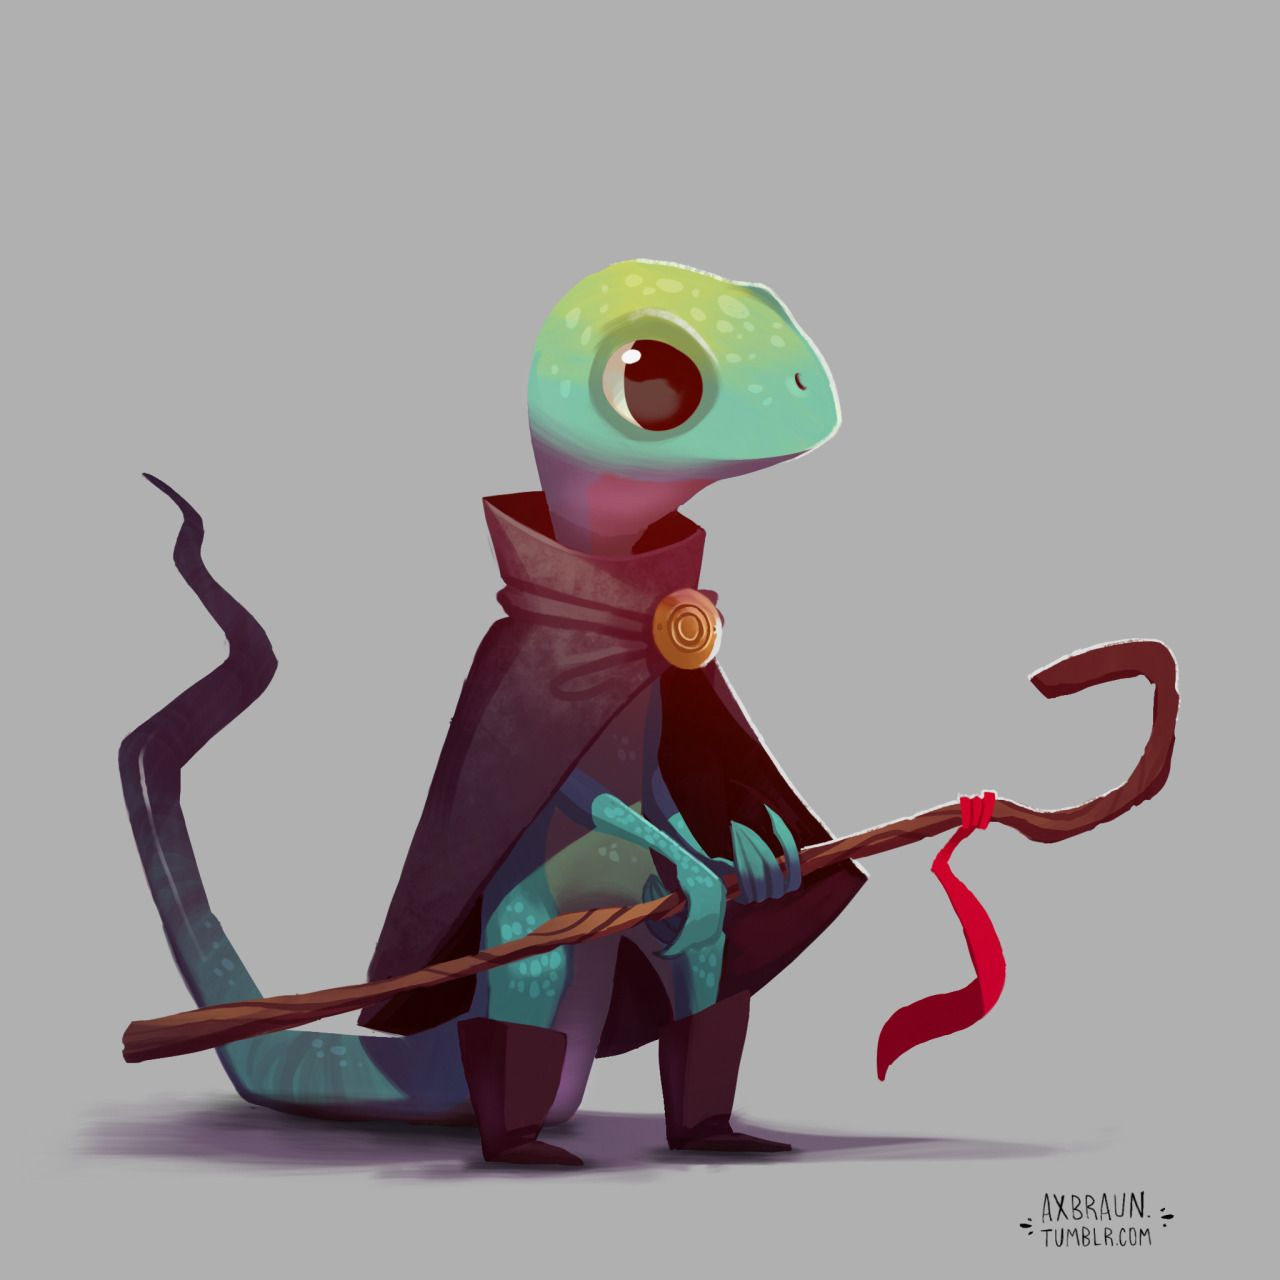 RPG Reptiles Fun Fantasy Characters Ive Been Alex